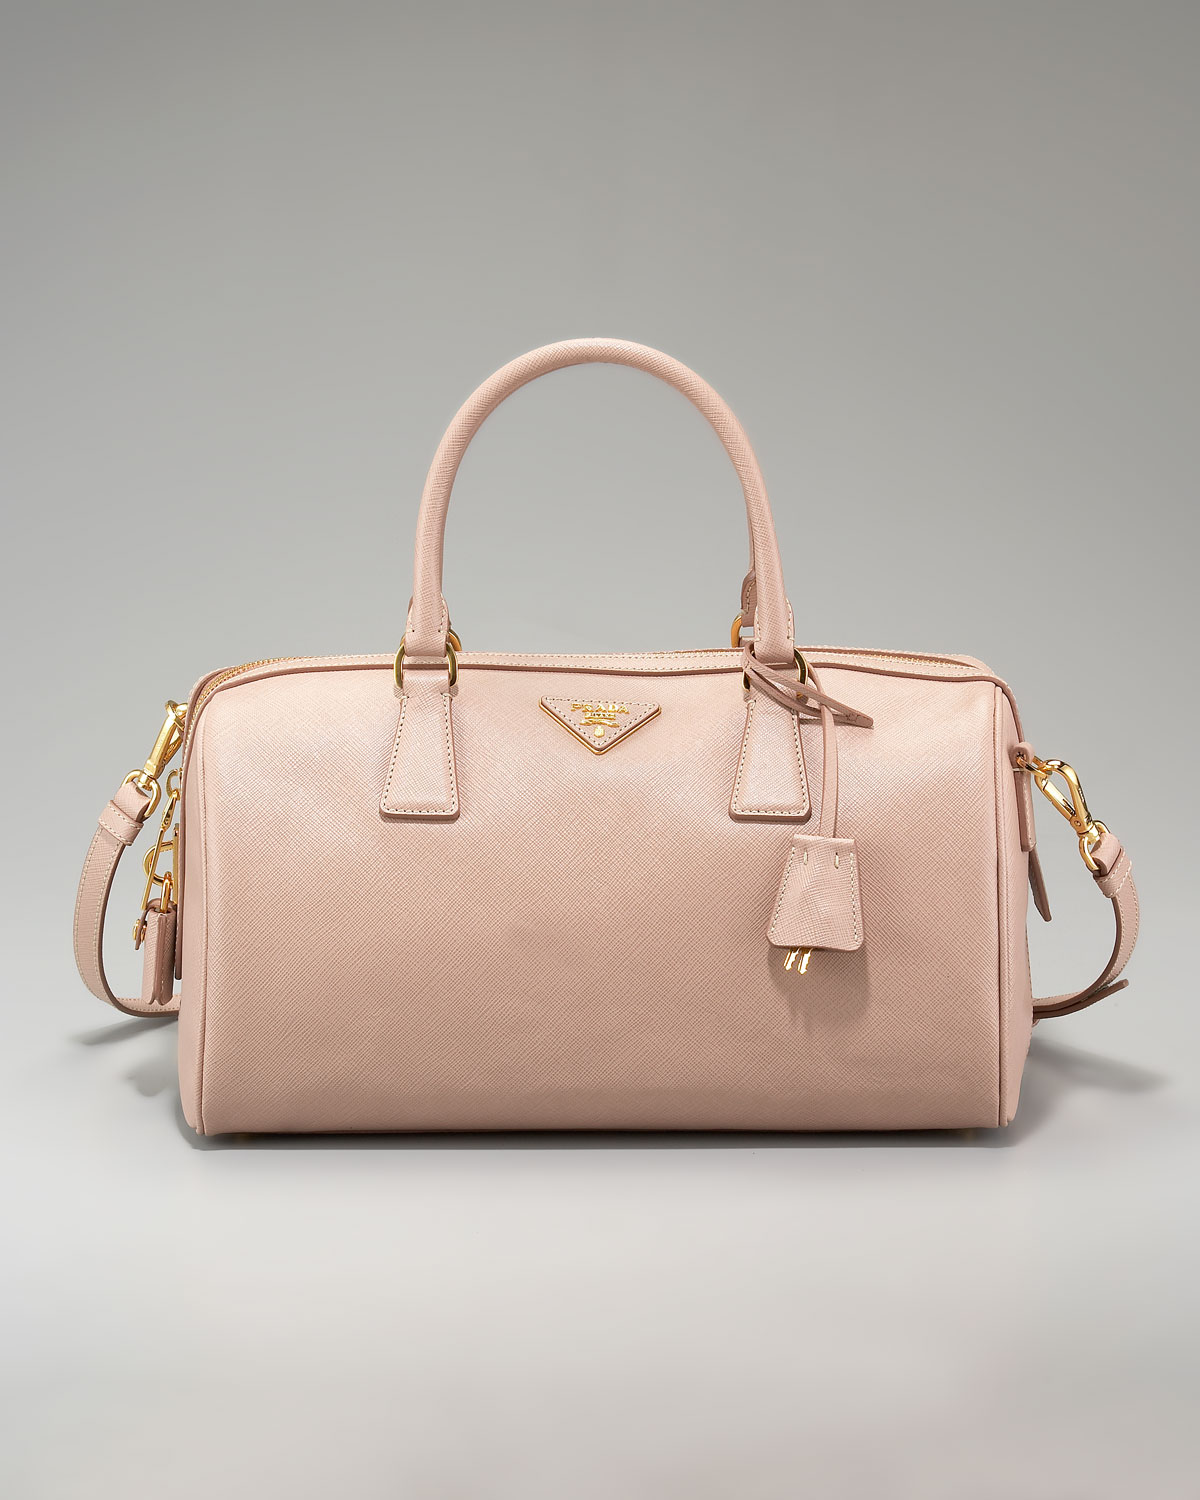 ba6d22d29646 ... leather caramel promenade ladies top handle bag 7f909 fdb78 france lyst prada  saffiano lux top handle bag in pink 076c7 849ea ...